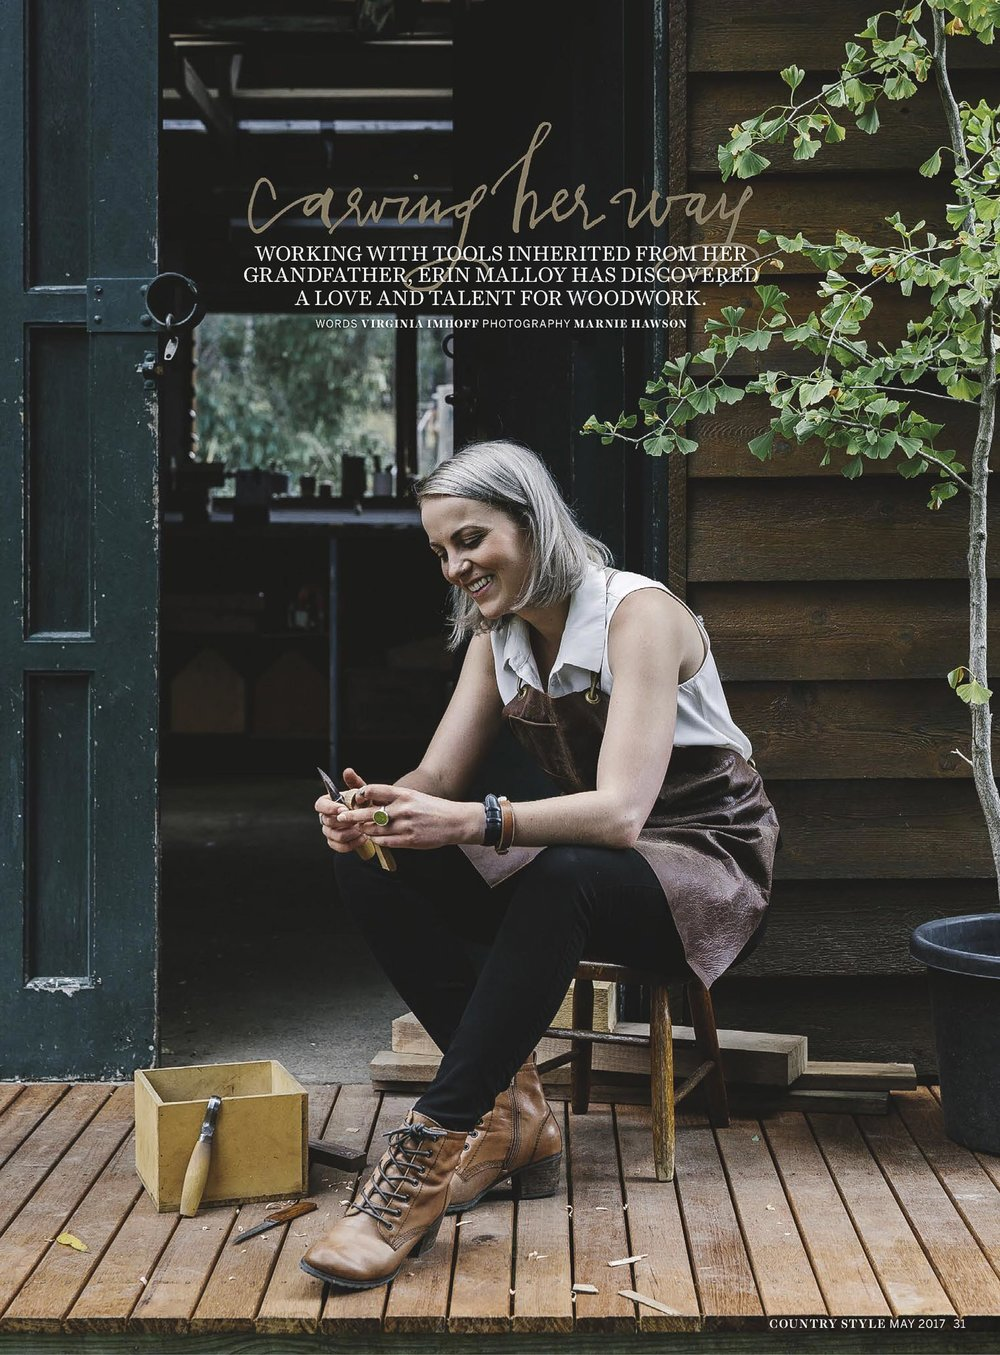 Marnie Hawson, Melbourne lifestyle photographer for Country Style magazine and Erin Malloy, woodworker